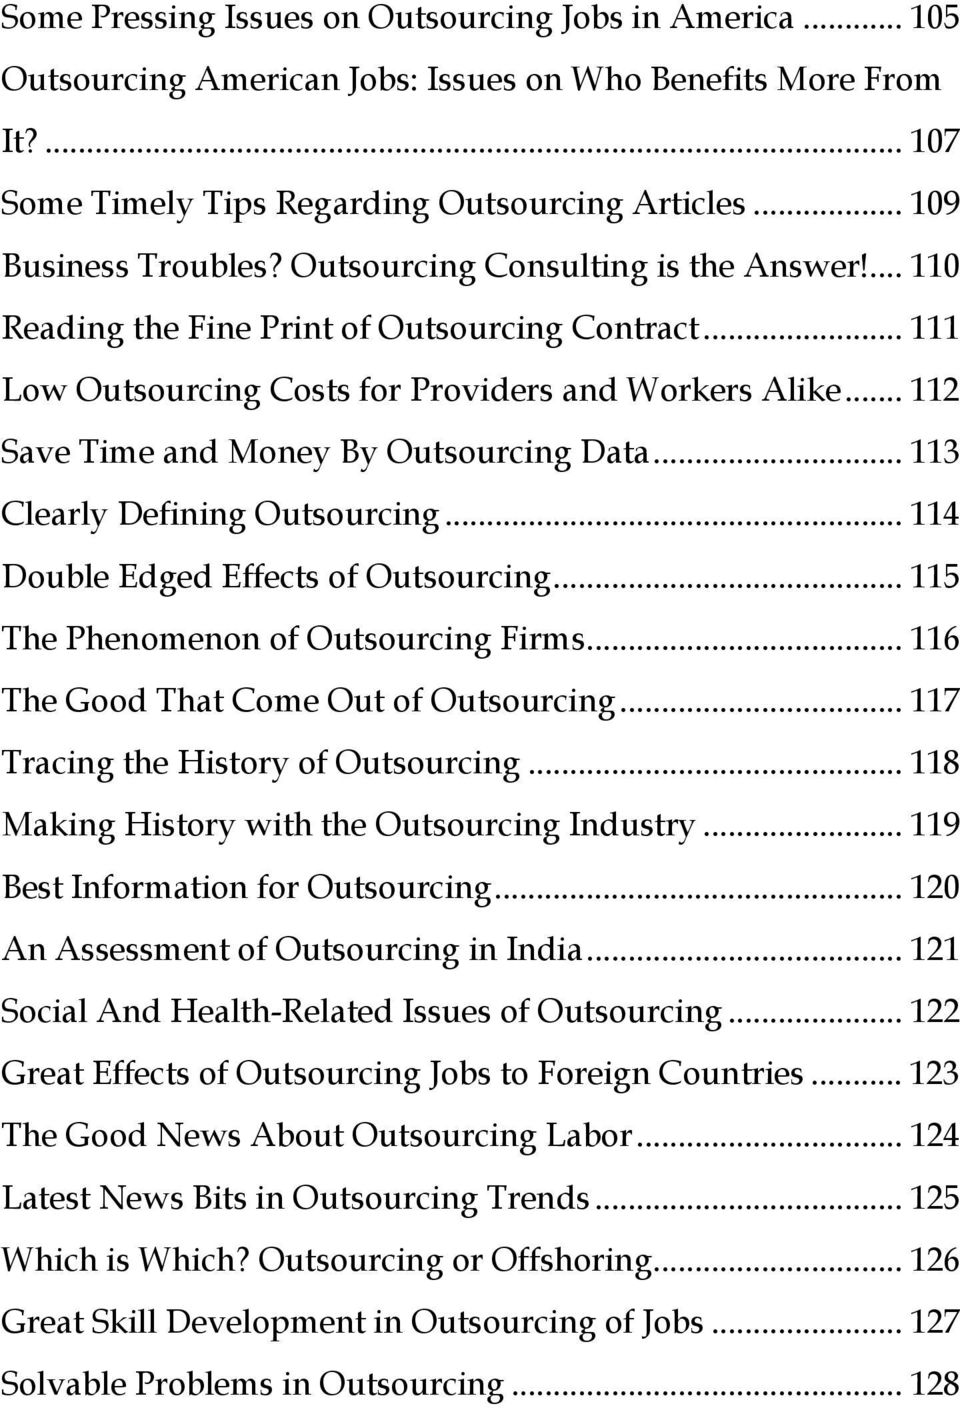 .. 112 Save Time and Money By Outsourcing Data... 113 Clearly Defining Outsourcing... 114 Double Edged Effects of Outsourcing... 115 The Phenomenon of Outsourcing Firms.